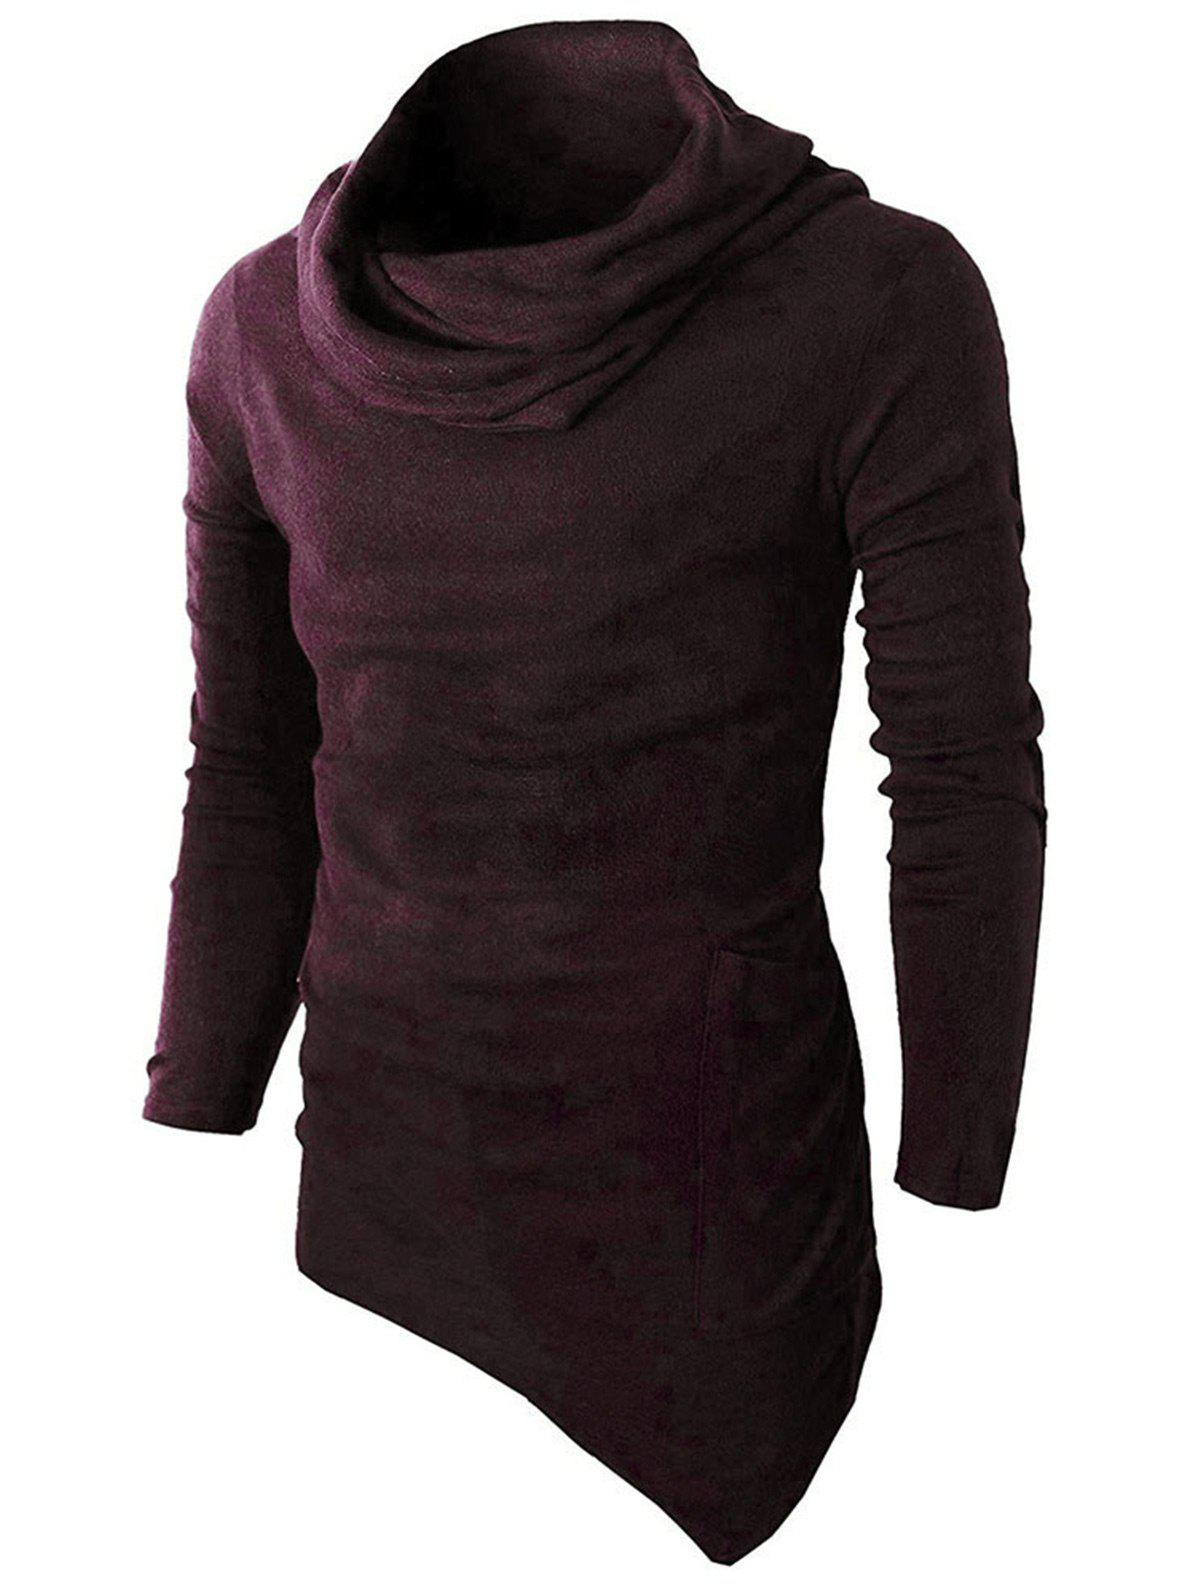 Pocket Cowl Neck Asymmetrical SweaterMEN<br><br>Size: L; Color: WINE RED; Type: Pullovers; Material: Cotton,Polyester; Sleeve Length: Full; Collar: Cowl Neck; Style: Fashion; Weight: 0.4110kg; Package Contents: 1 x Sweater;